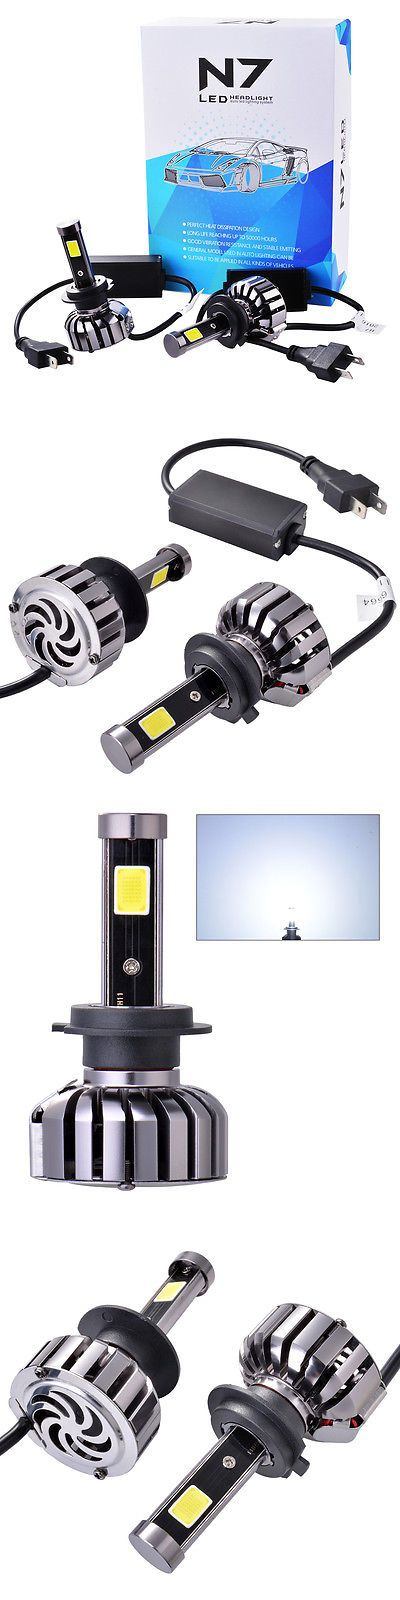 Car Lighting: 2X Led H7 Headlight Conversion Total 80W 9600Lm Cob 6000K Bulbs Waterproof Ld909 BUY IT NOW ONLY: $34.48